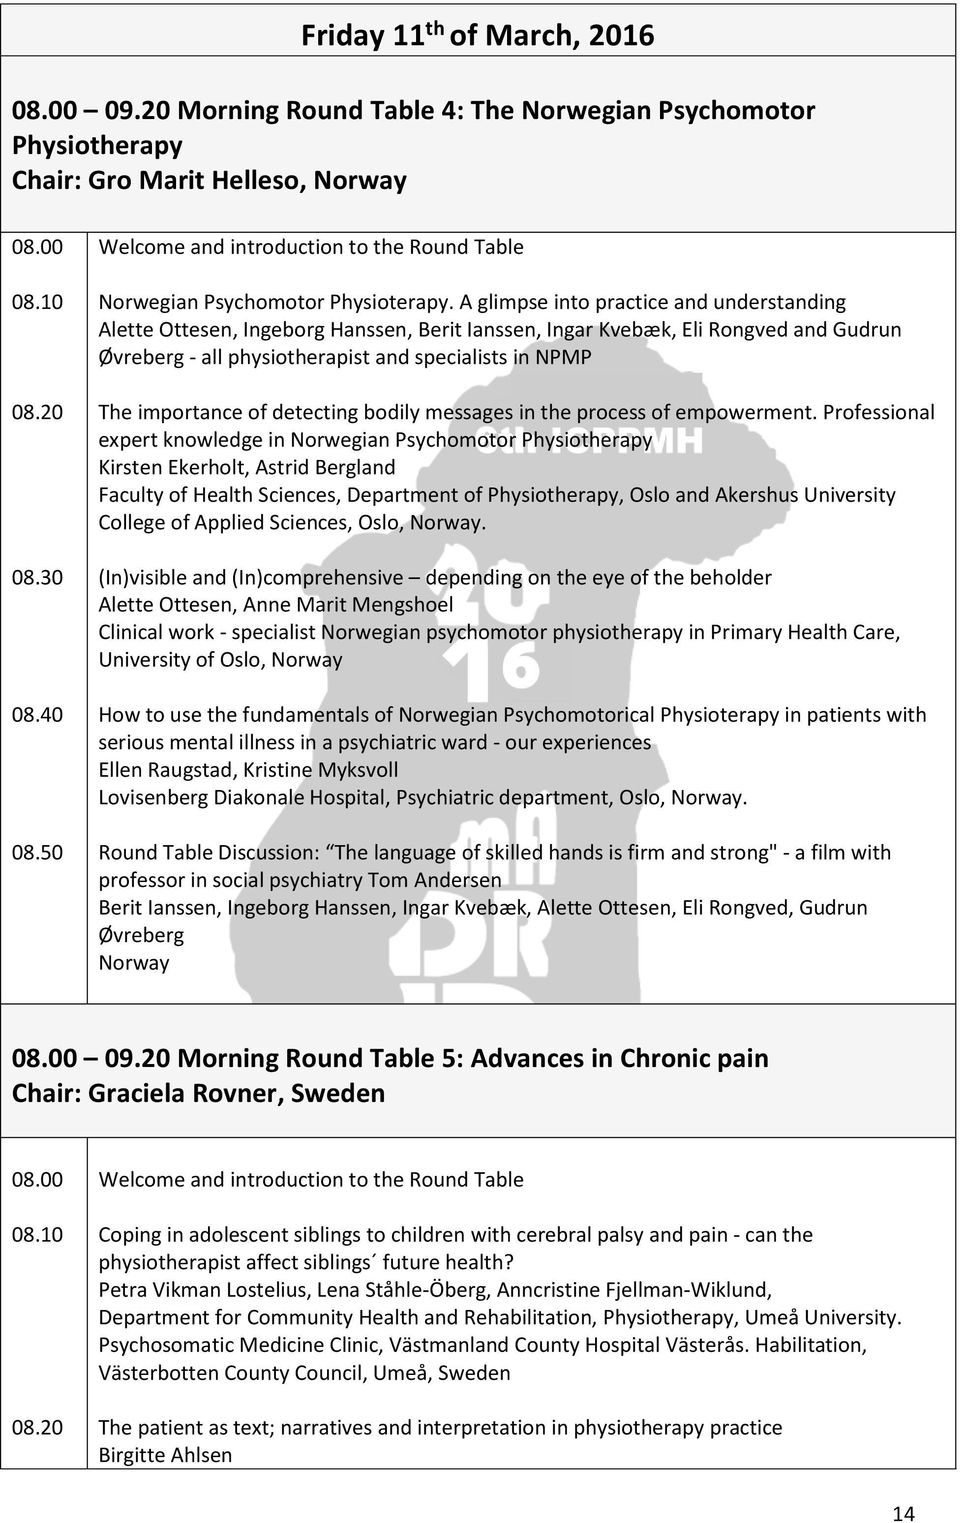 th international conference on physiotherapy in psychiatry and a glimpse into practice and understanding alette ottesen ingeborg hanssen berit ianssen ingar